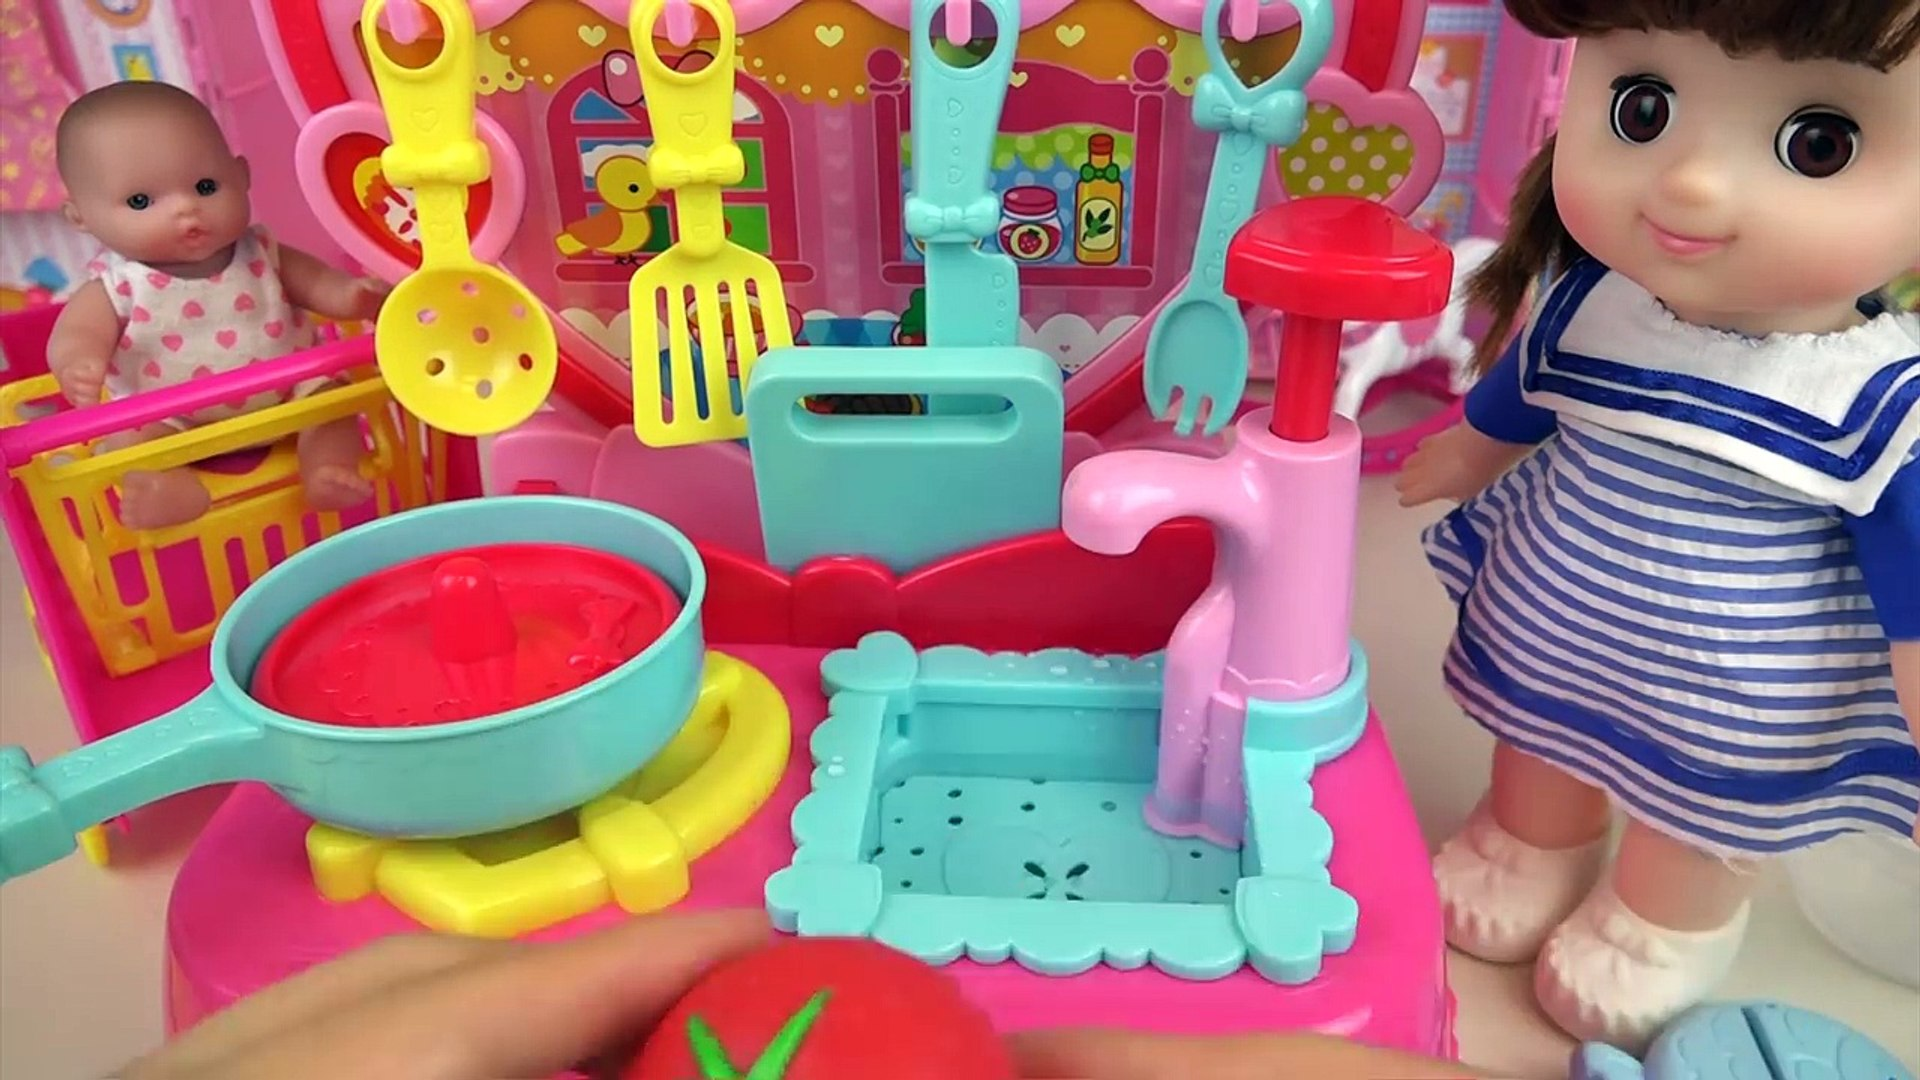 Kitchen And Food Cooking Toys And Baby Doll Play Video Dailymotion